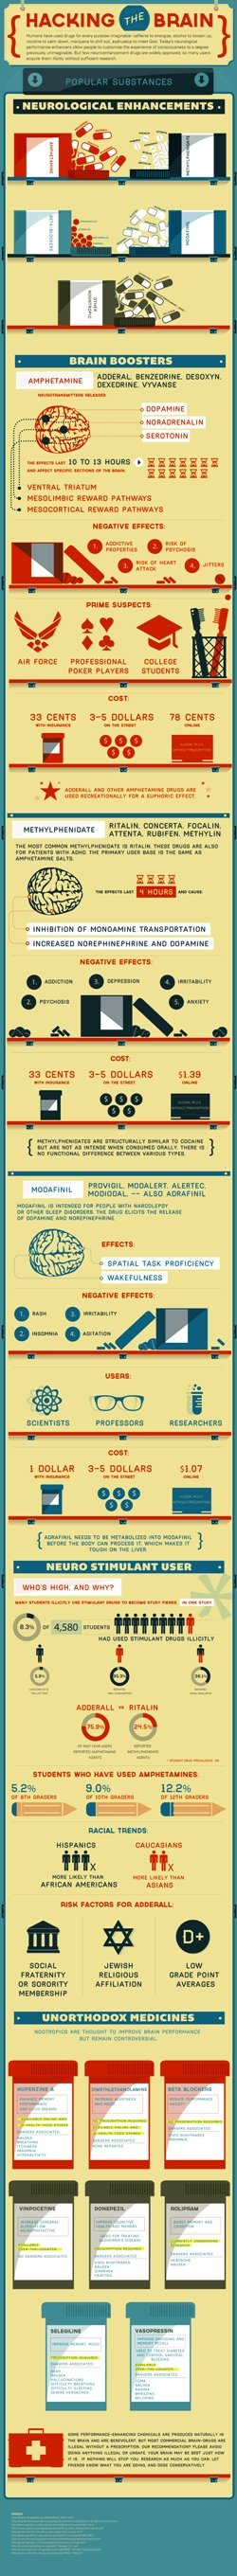 Hacking the brain #infographic